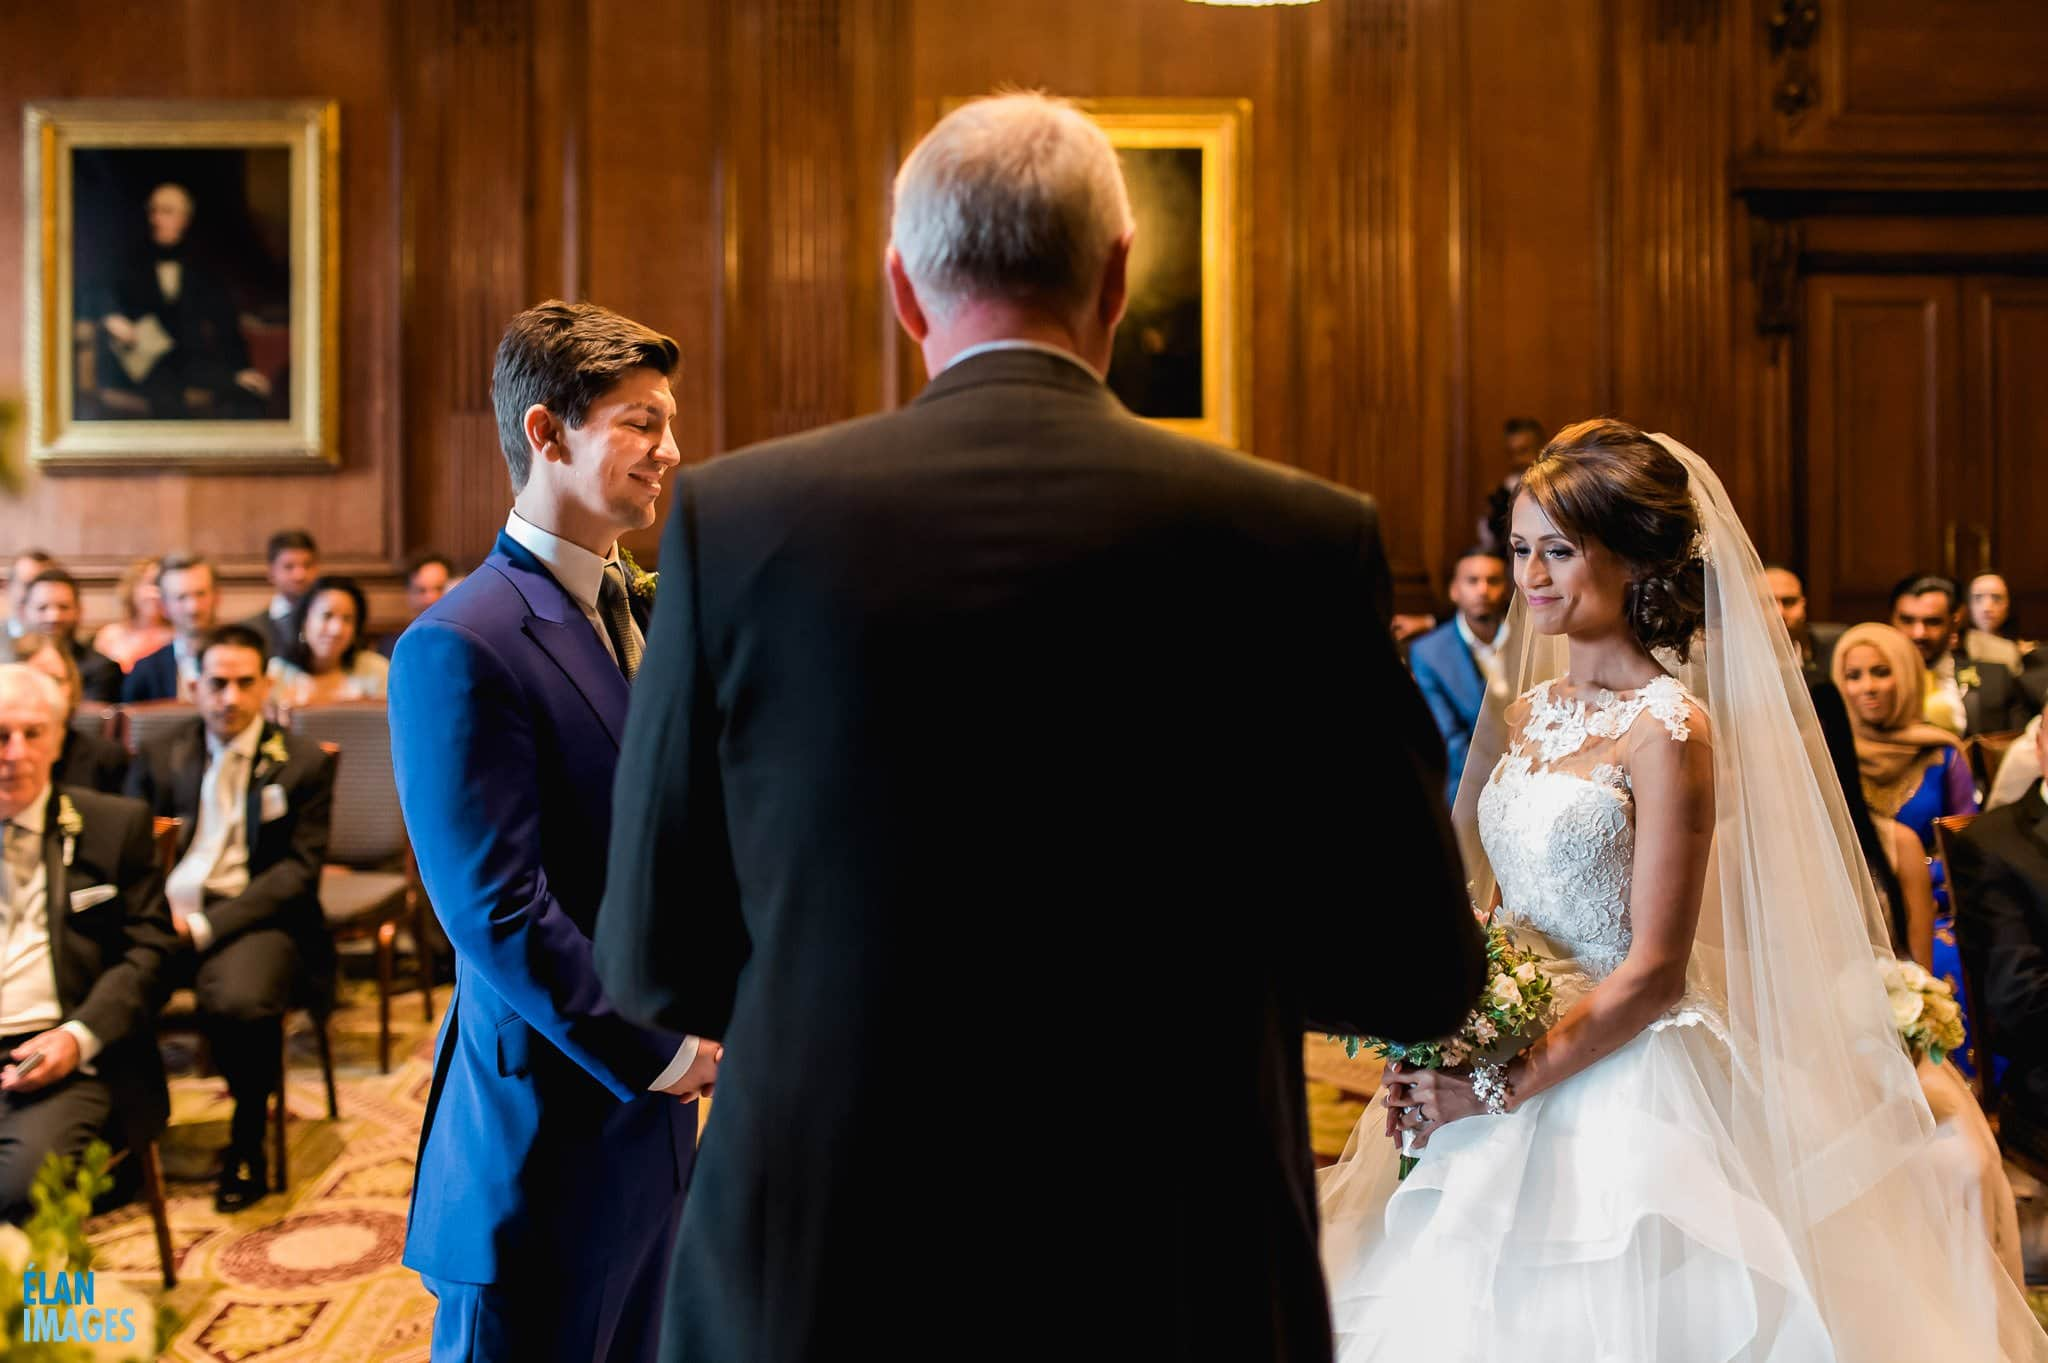 Wedding in Westminster – Fusion Wedding at One Great George Street 31